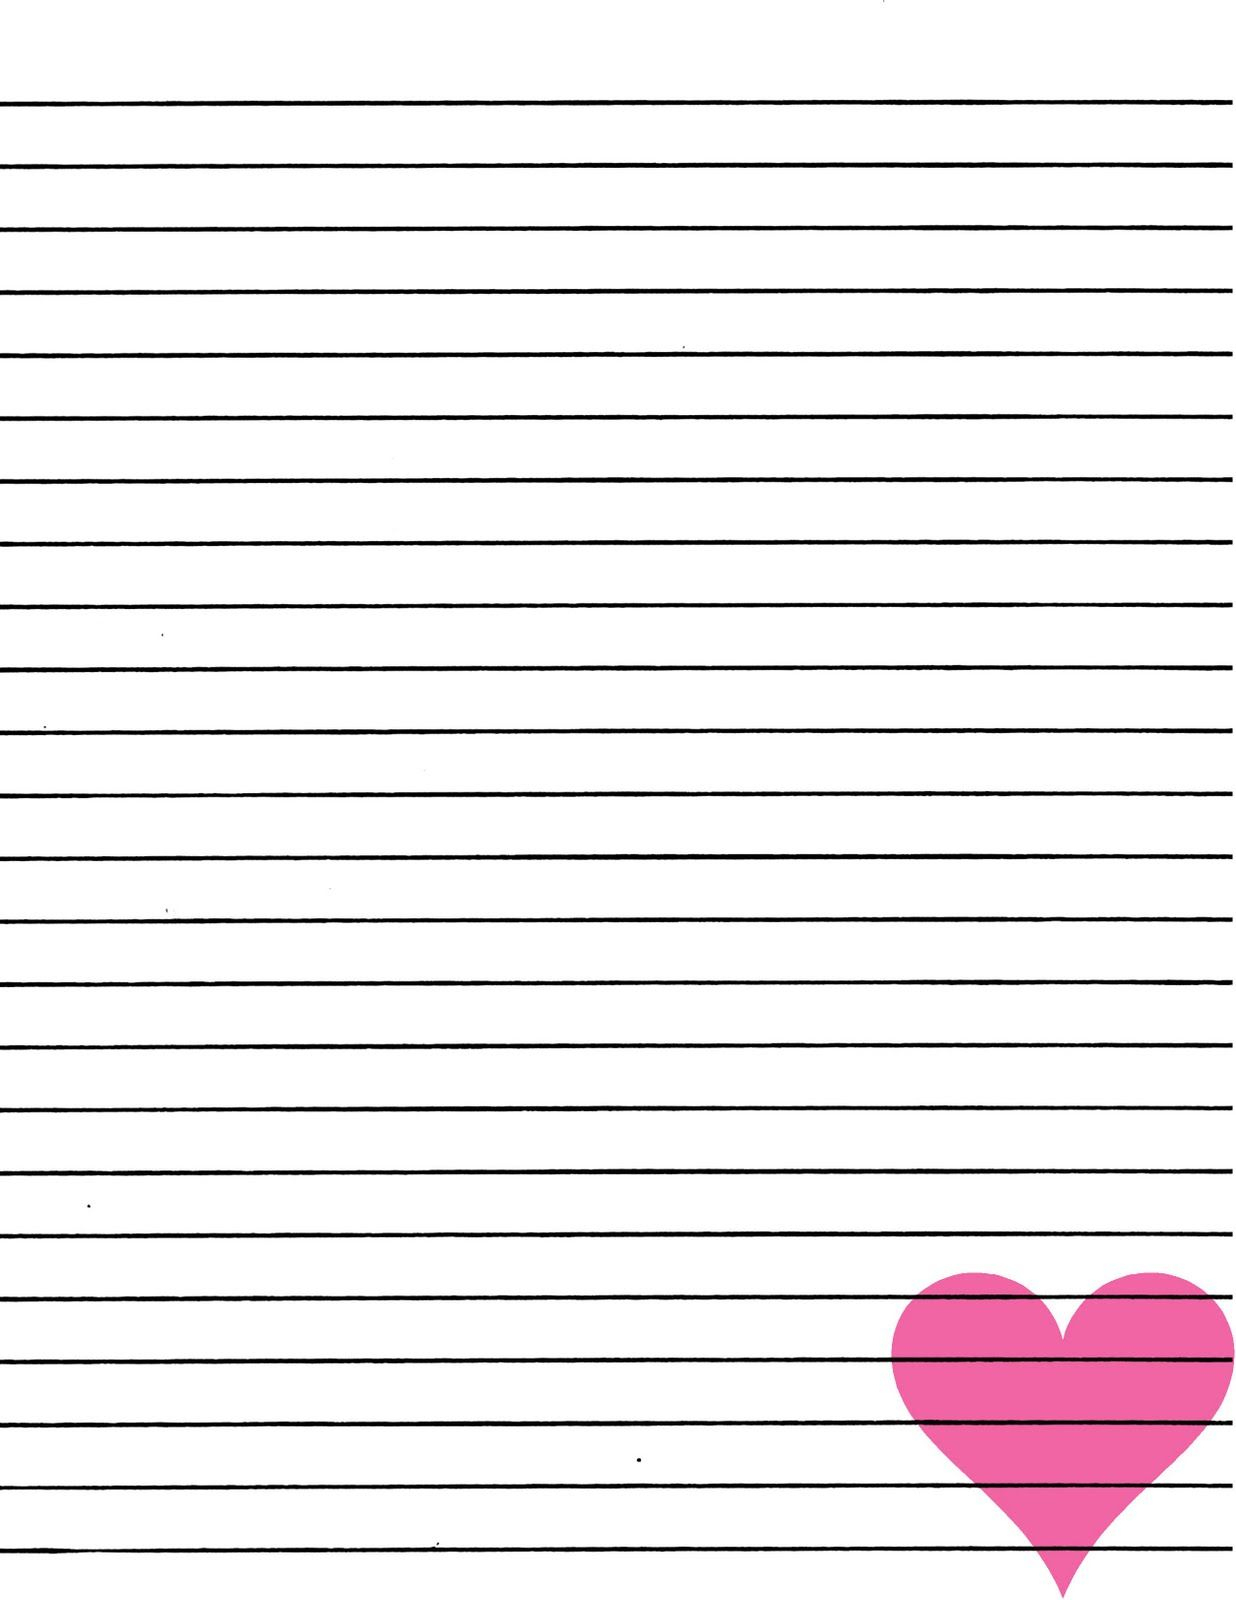 Just Smashing Paper: Freebie!! Pink Heart Lined Paper Printable - Free Printable Lined Paper